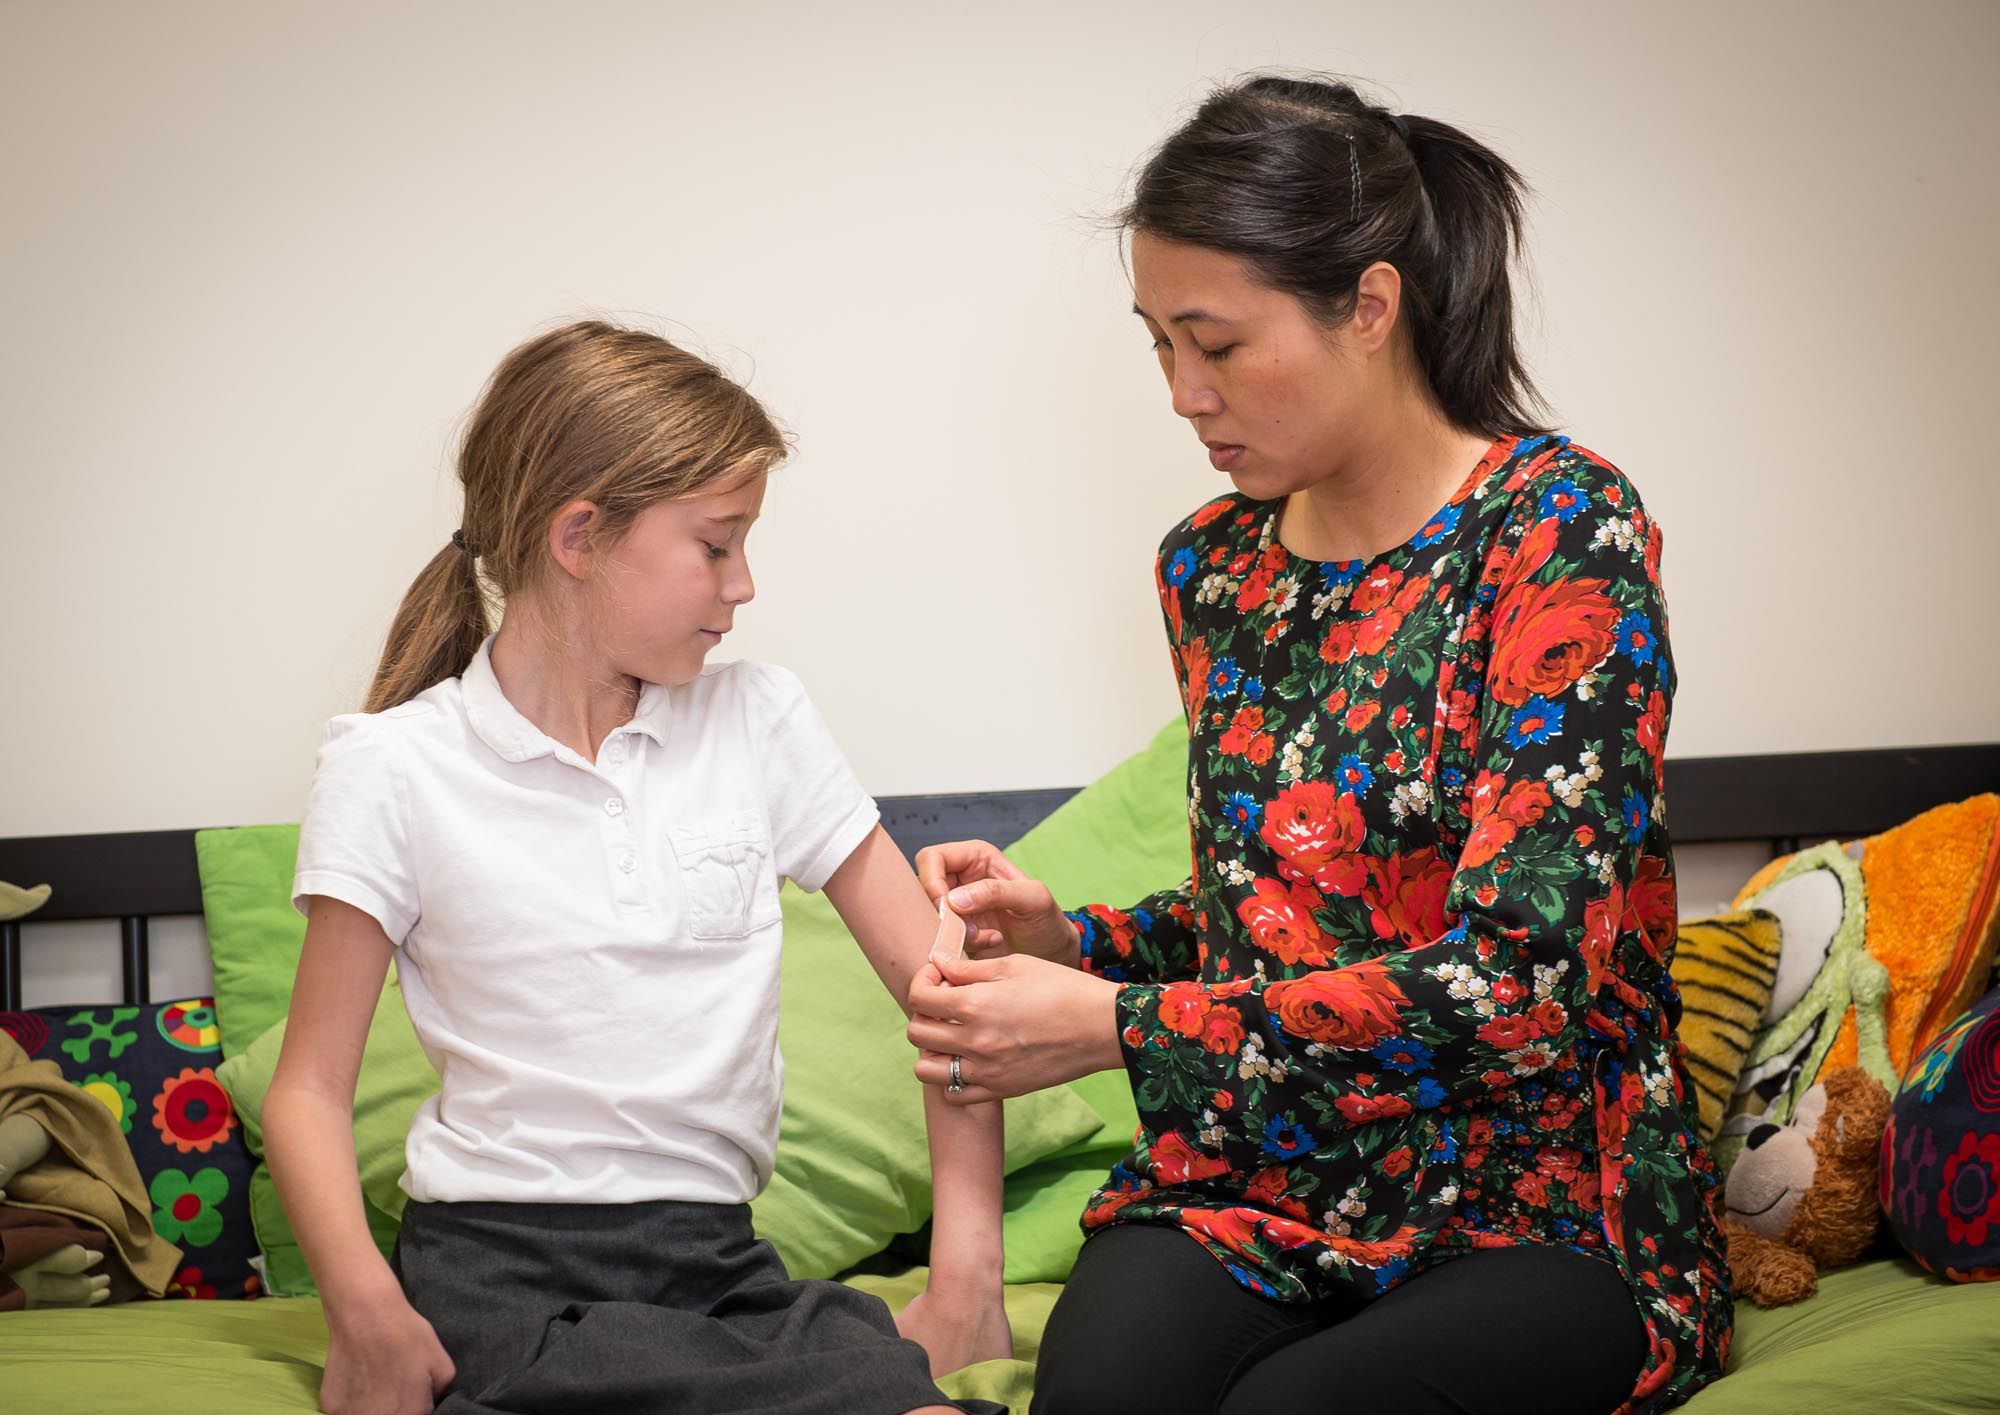 Putting on a plaster on girl's arm